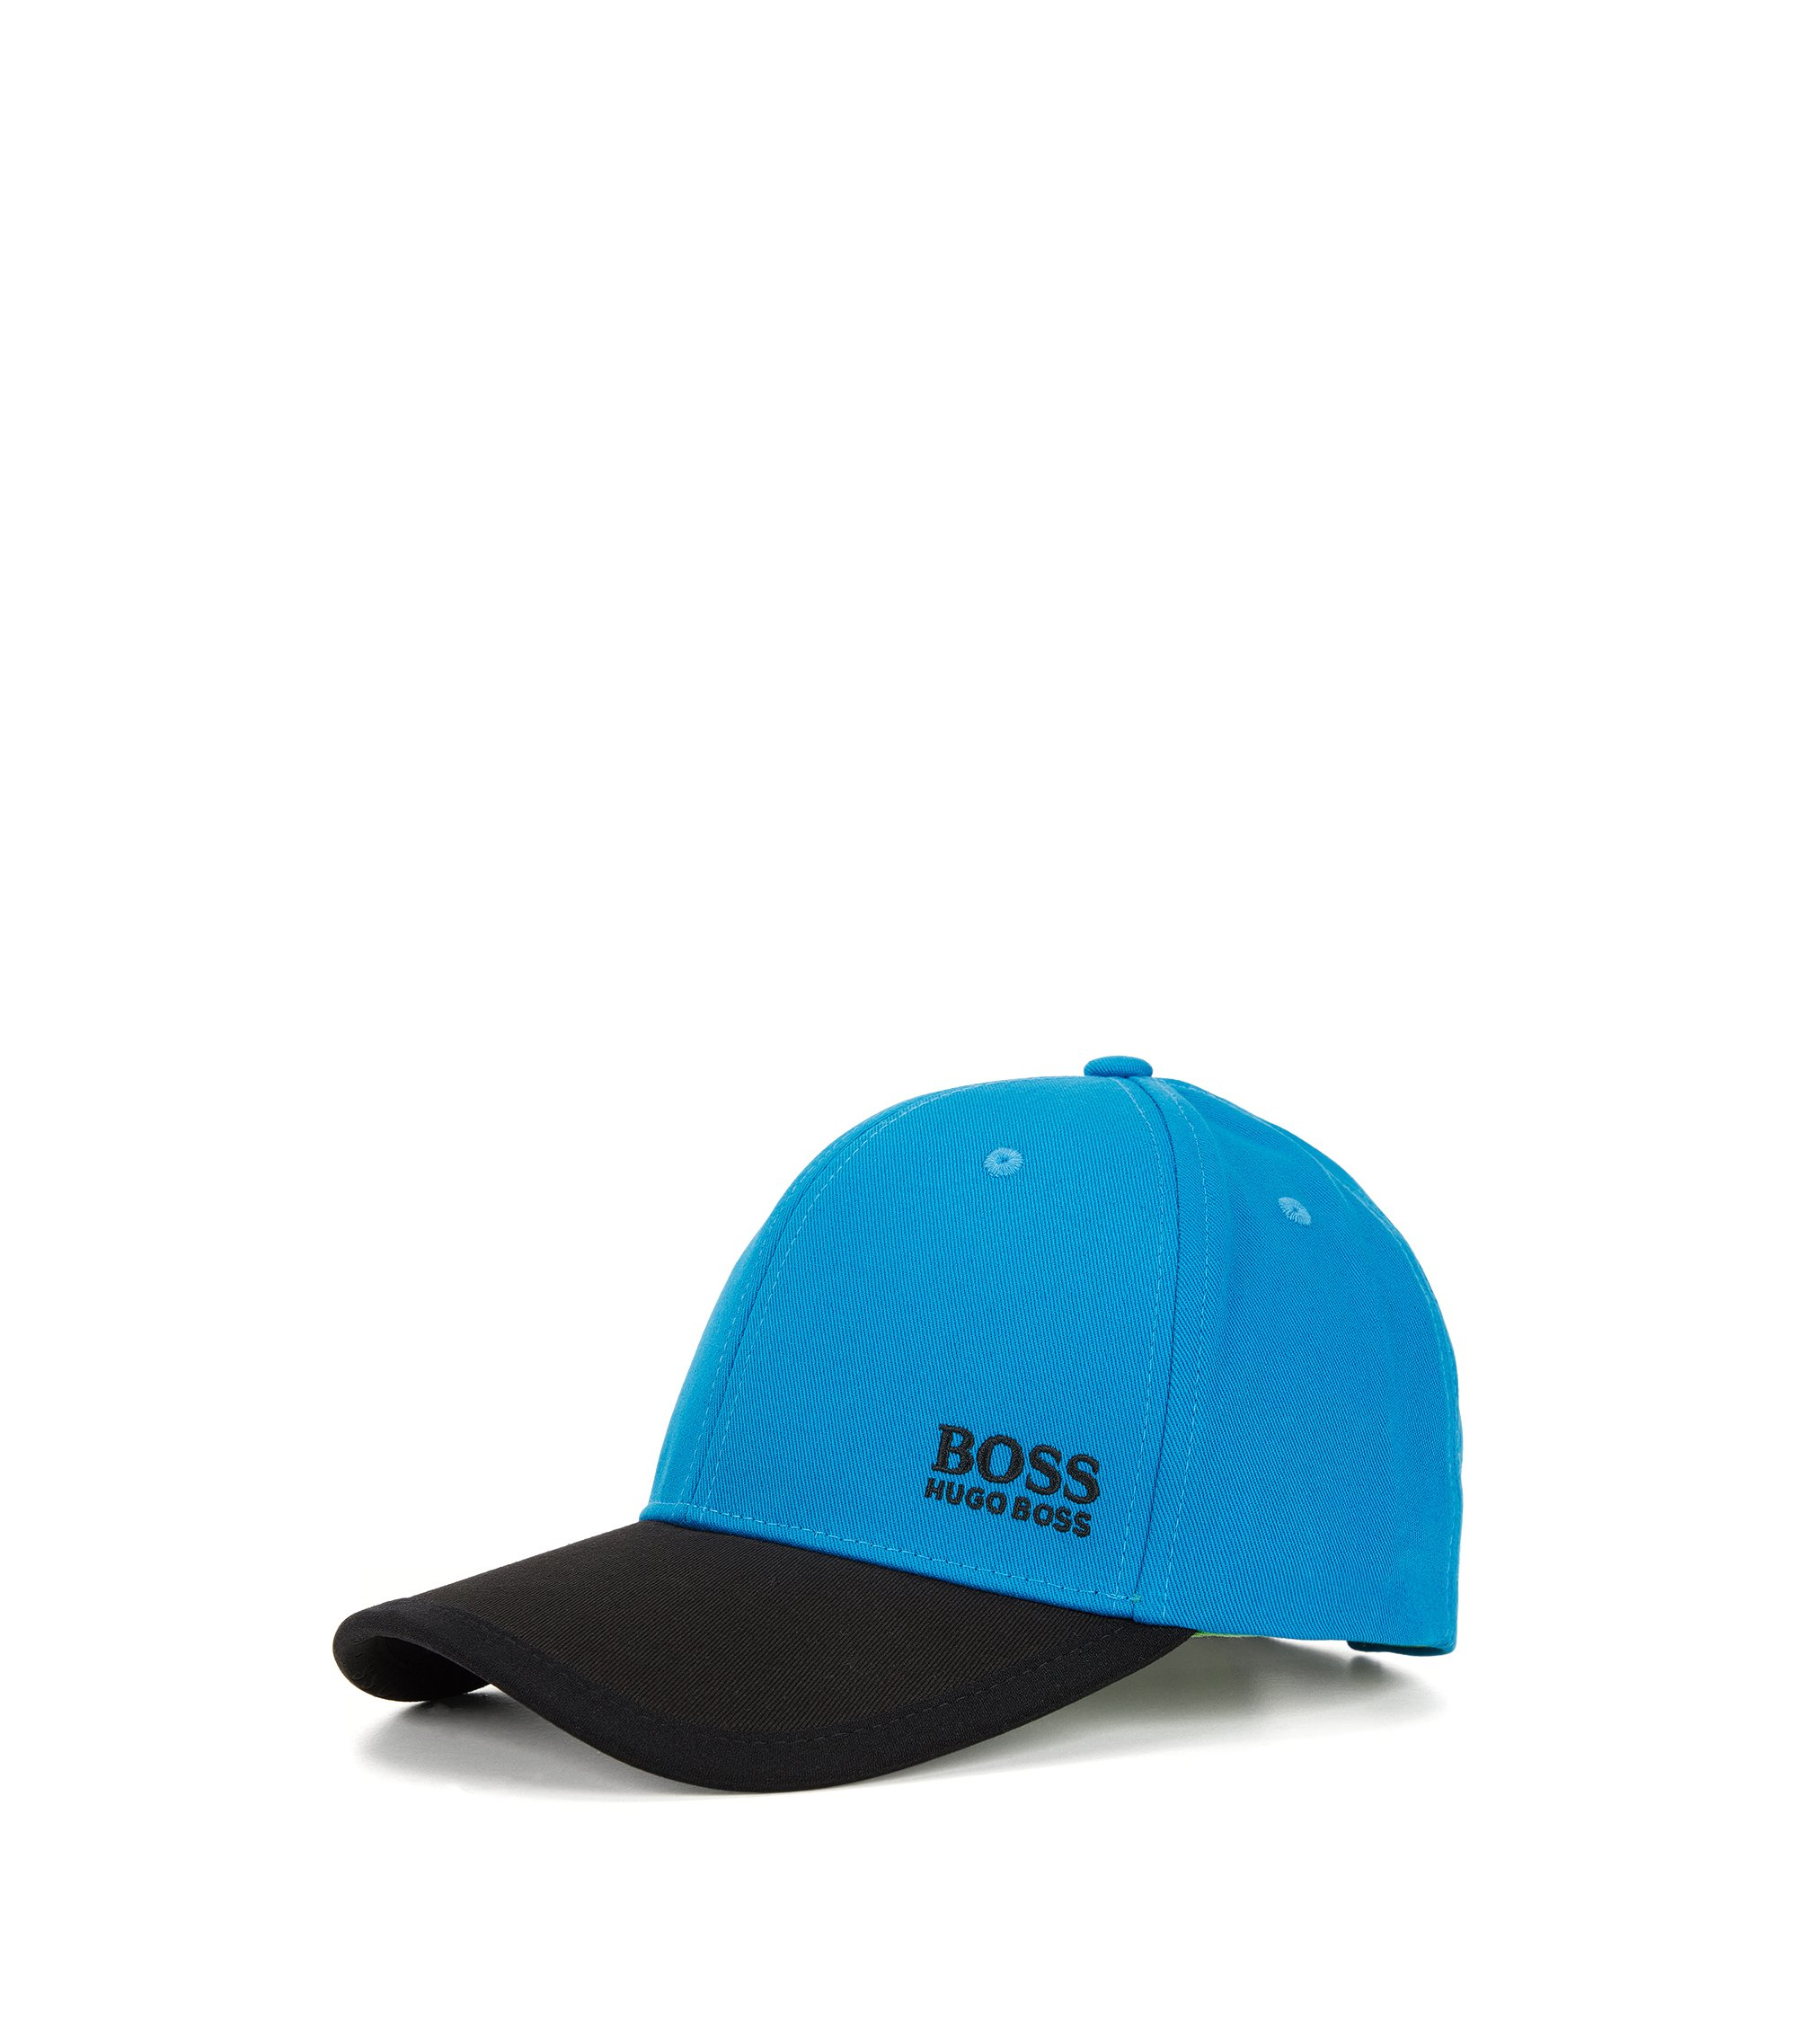 Baseball Cap aus Baumwolle im Colour-Block-Design, Blau